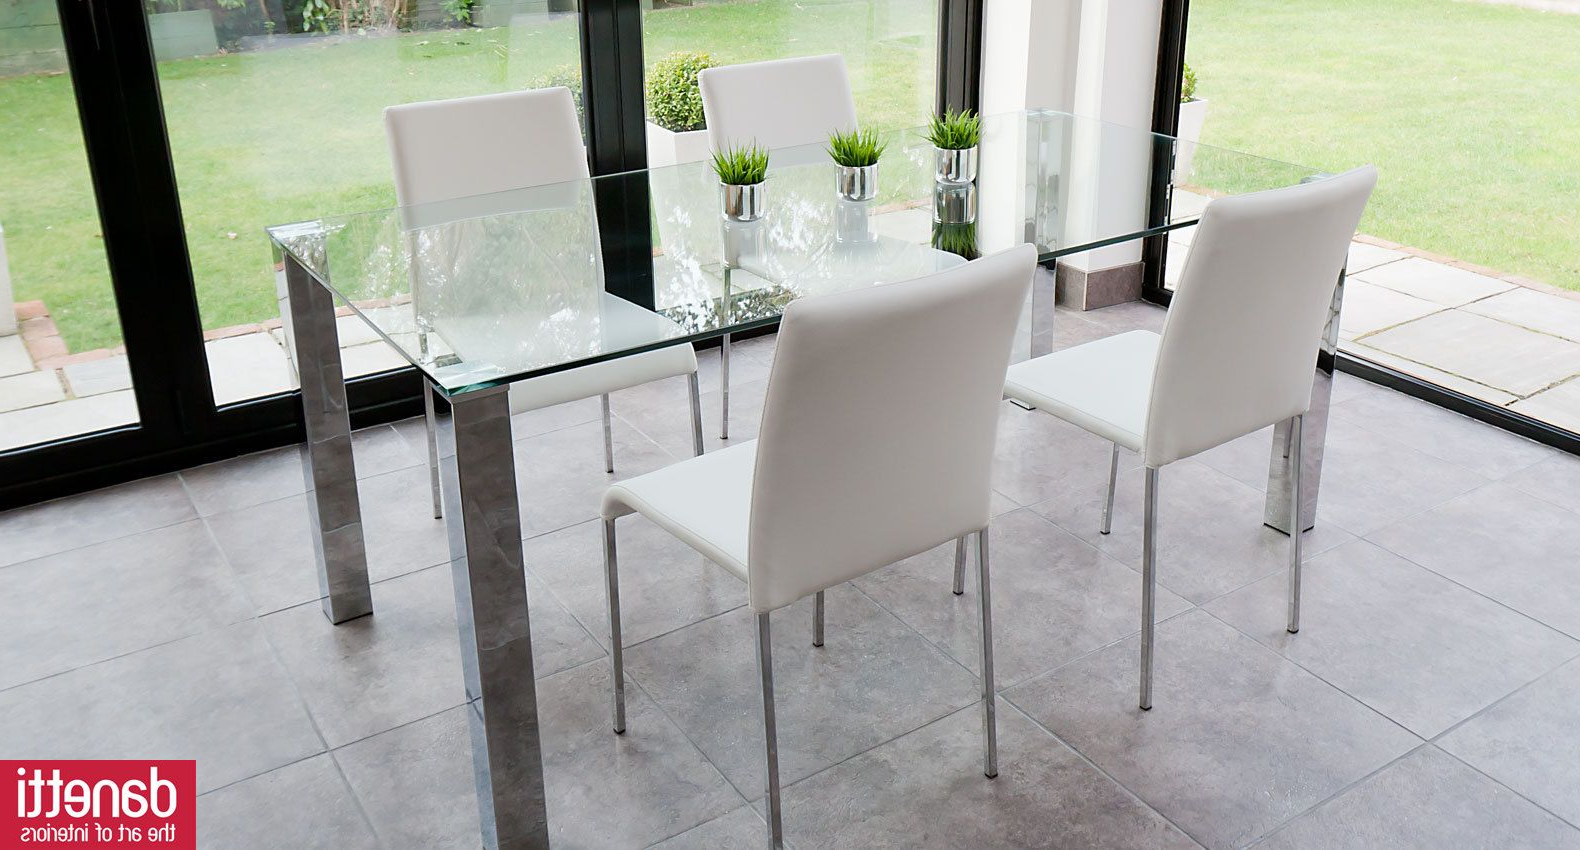 Popular Eames Style Dining Tables With Chromed Leg And Tempered Glass Top In The Tiva Chrome And Glass Dining Table Combines Style And (View 21 of 30)